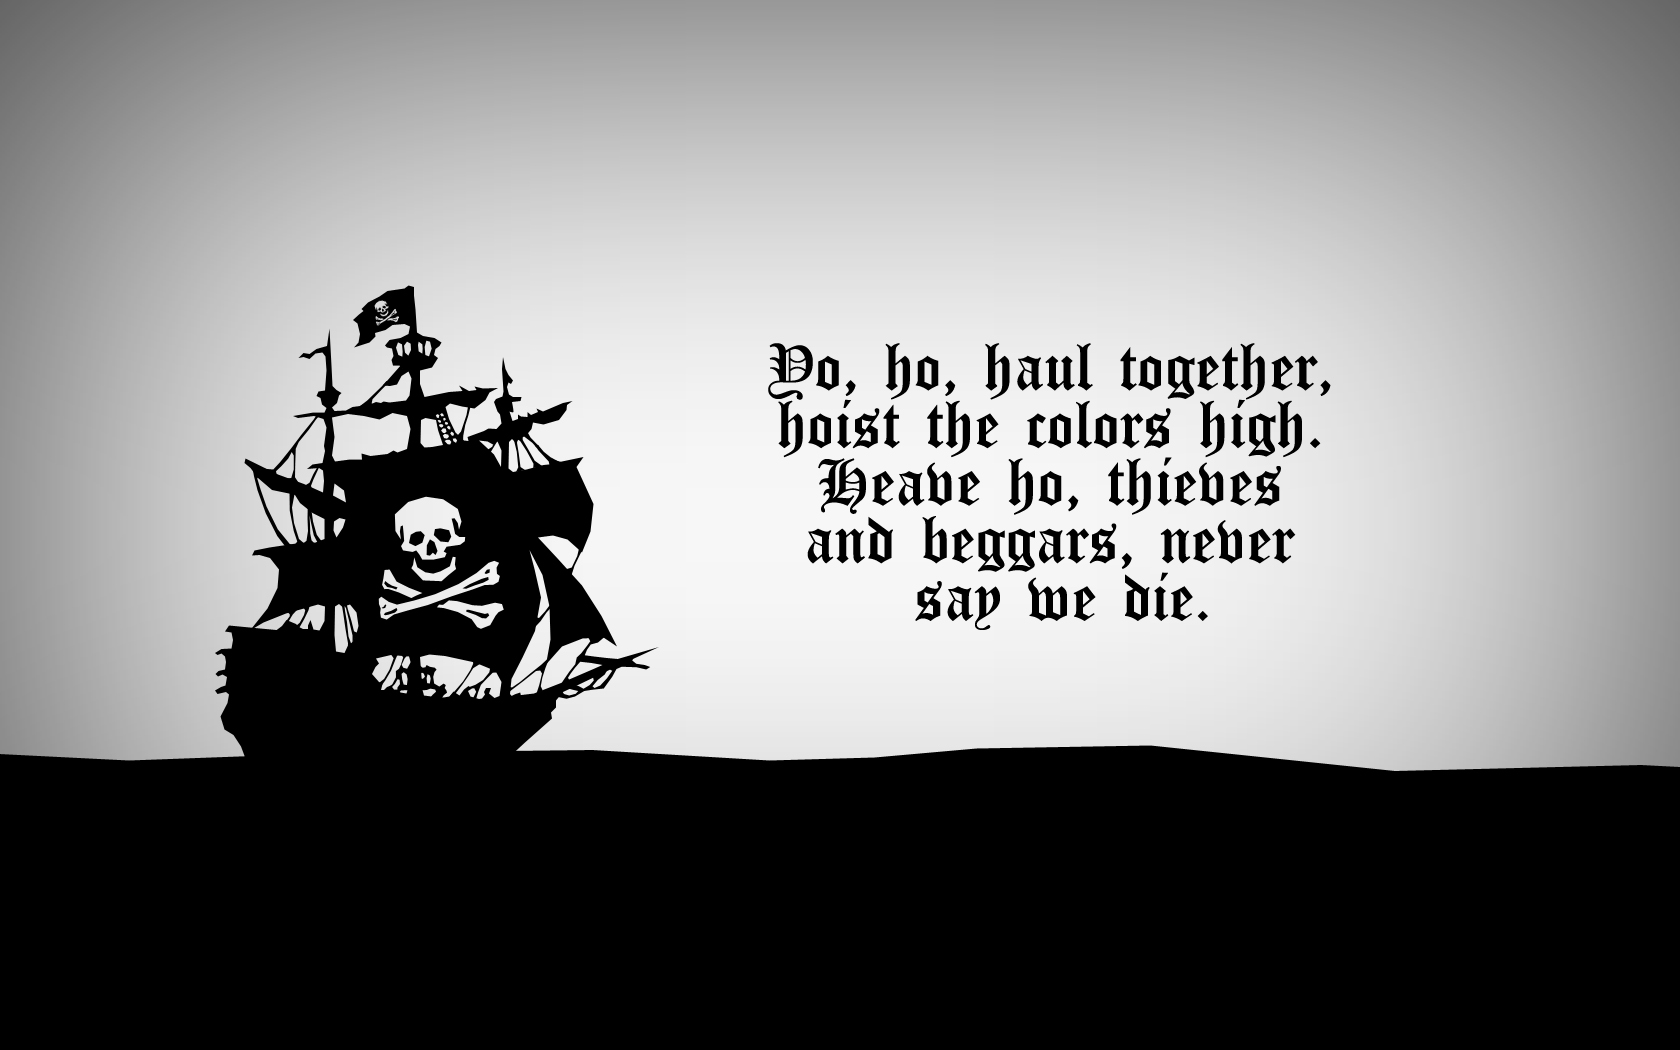 Pirates Skull Fire Wallpaper HD 1740 Wallpaper High Resolution 1680x1050